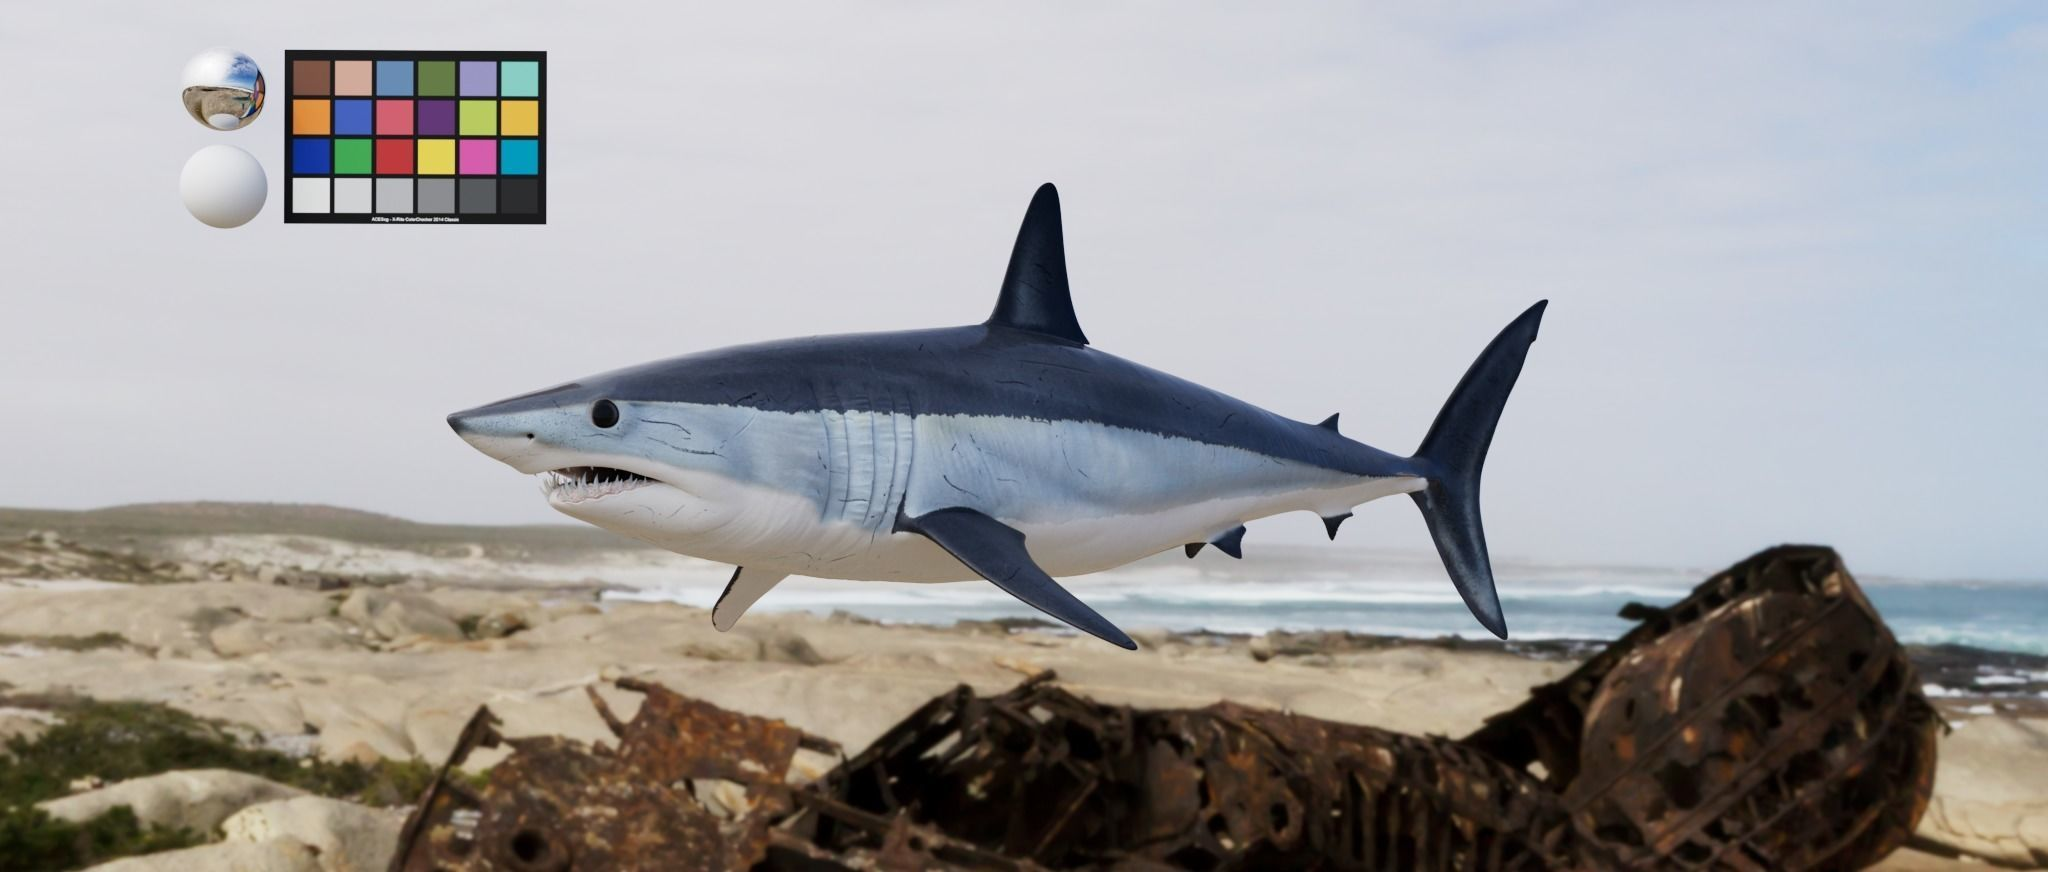 Shark  Mako model with materials